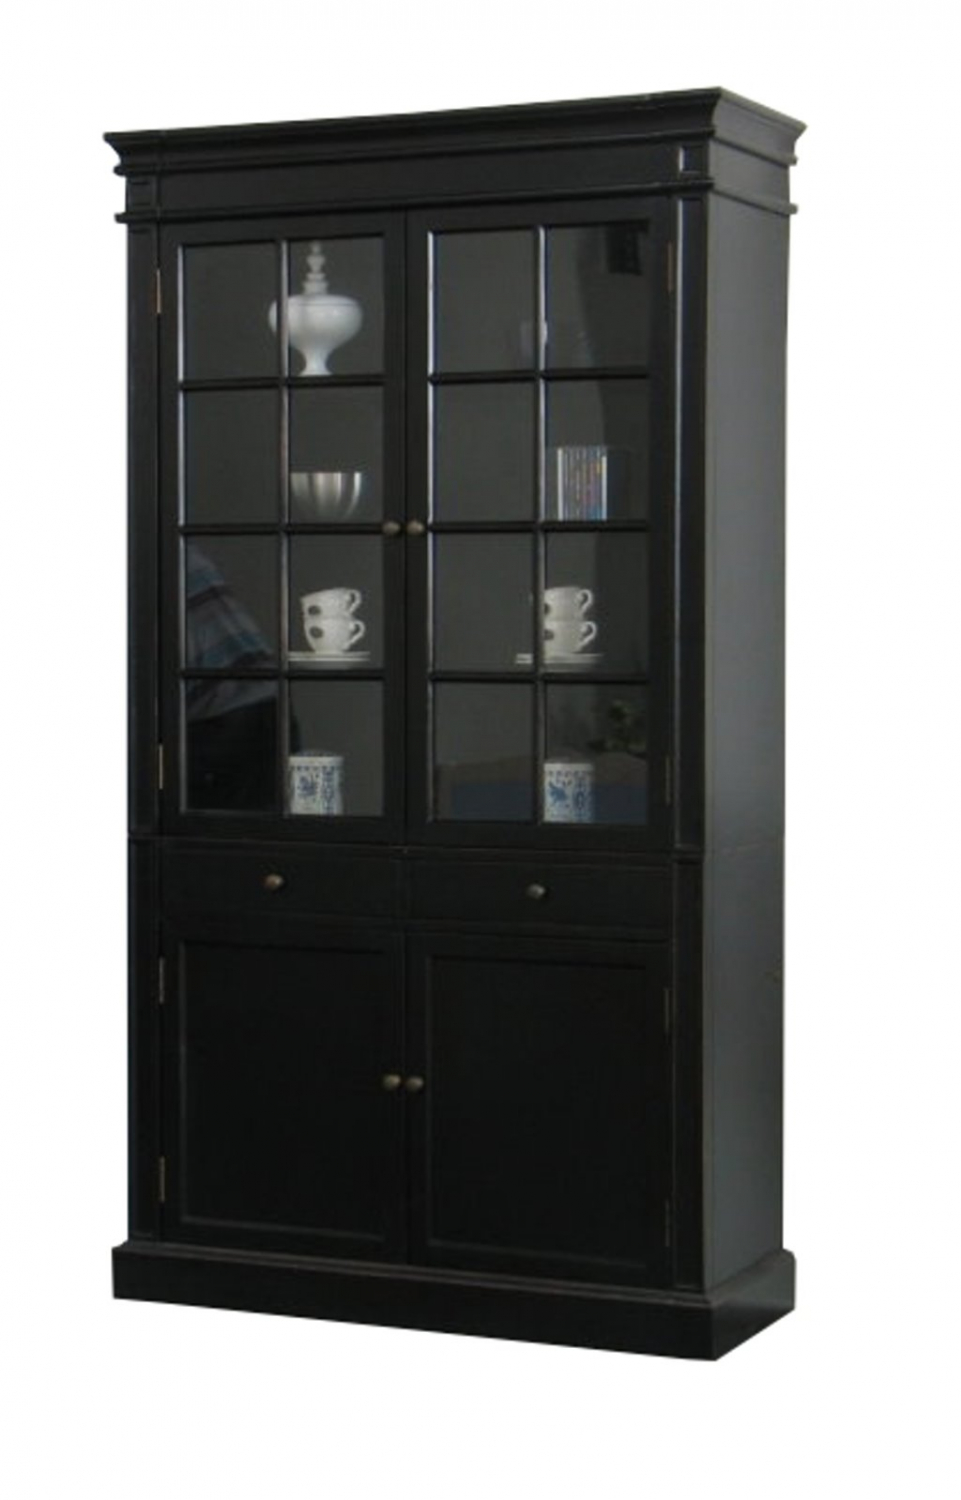 vitrinenschrank schwarz bestellen sie hier. Black Bedroom Furniture Sets. Home Design Ideas